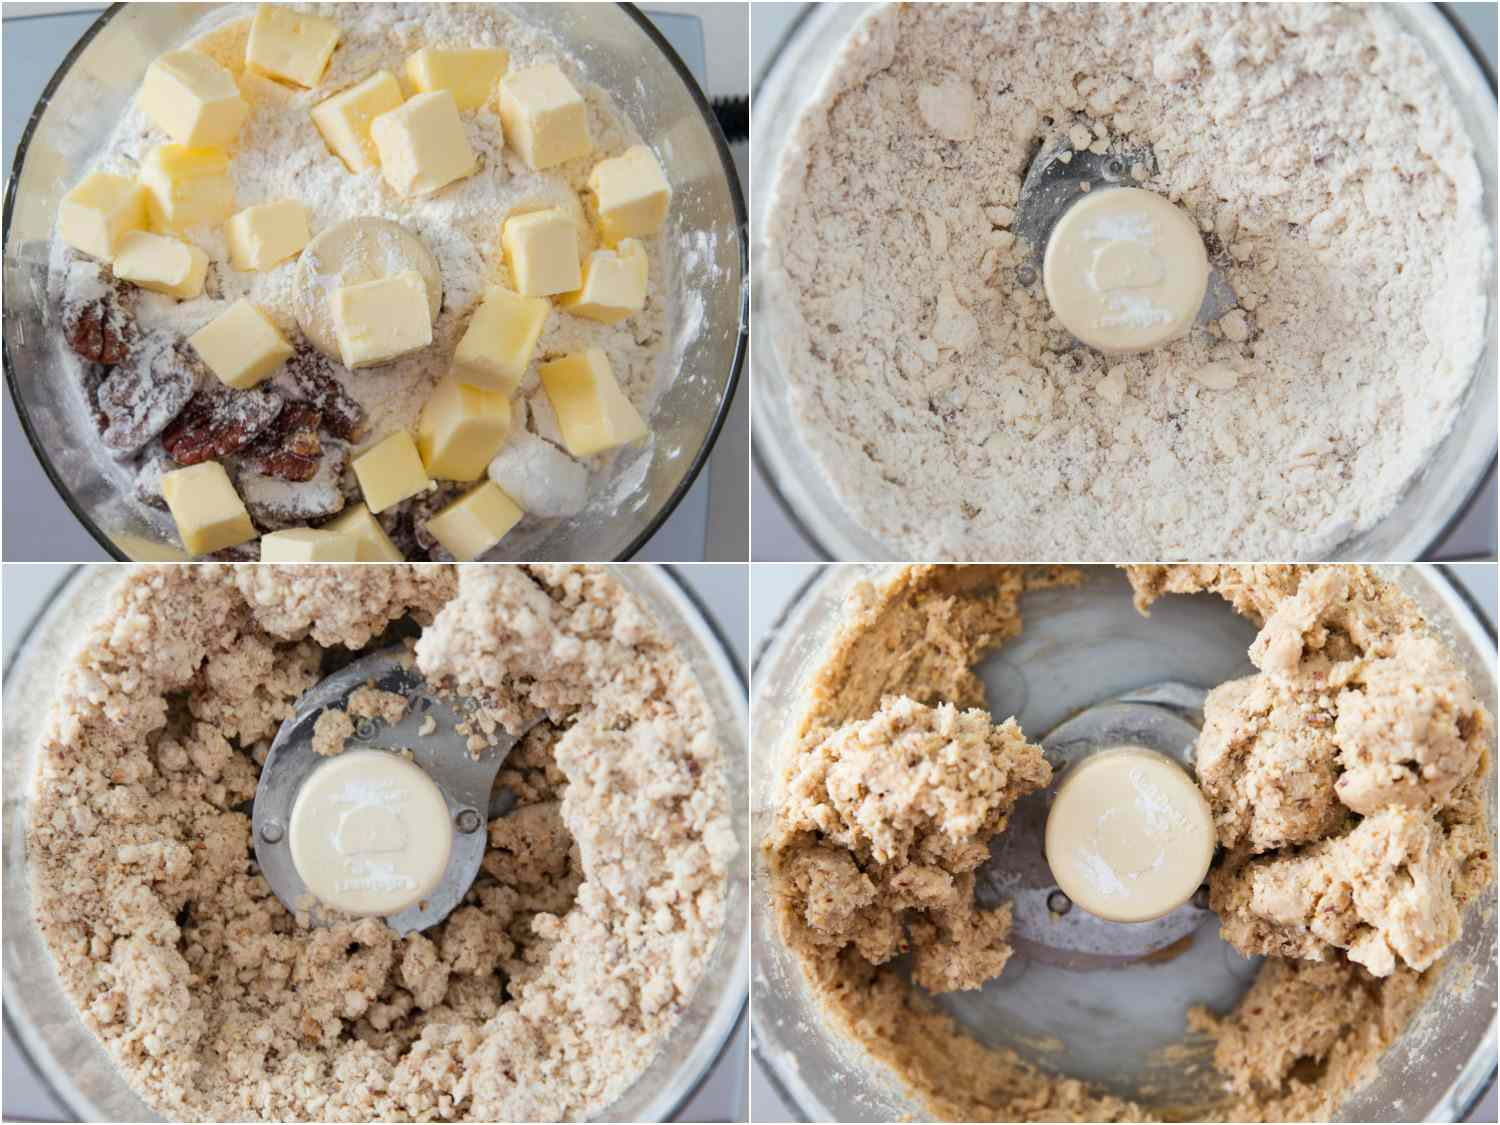 20161207-mexican-wedding-cookies-vicky-wasik--collage-1.jpg